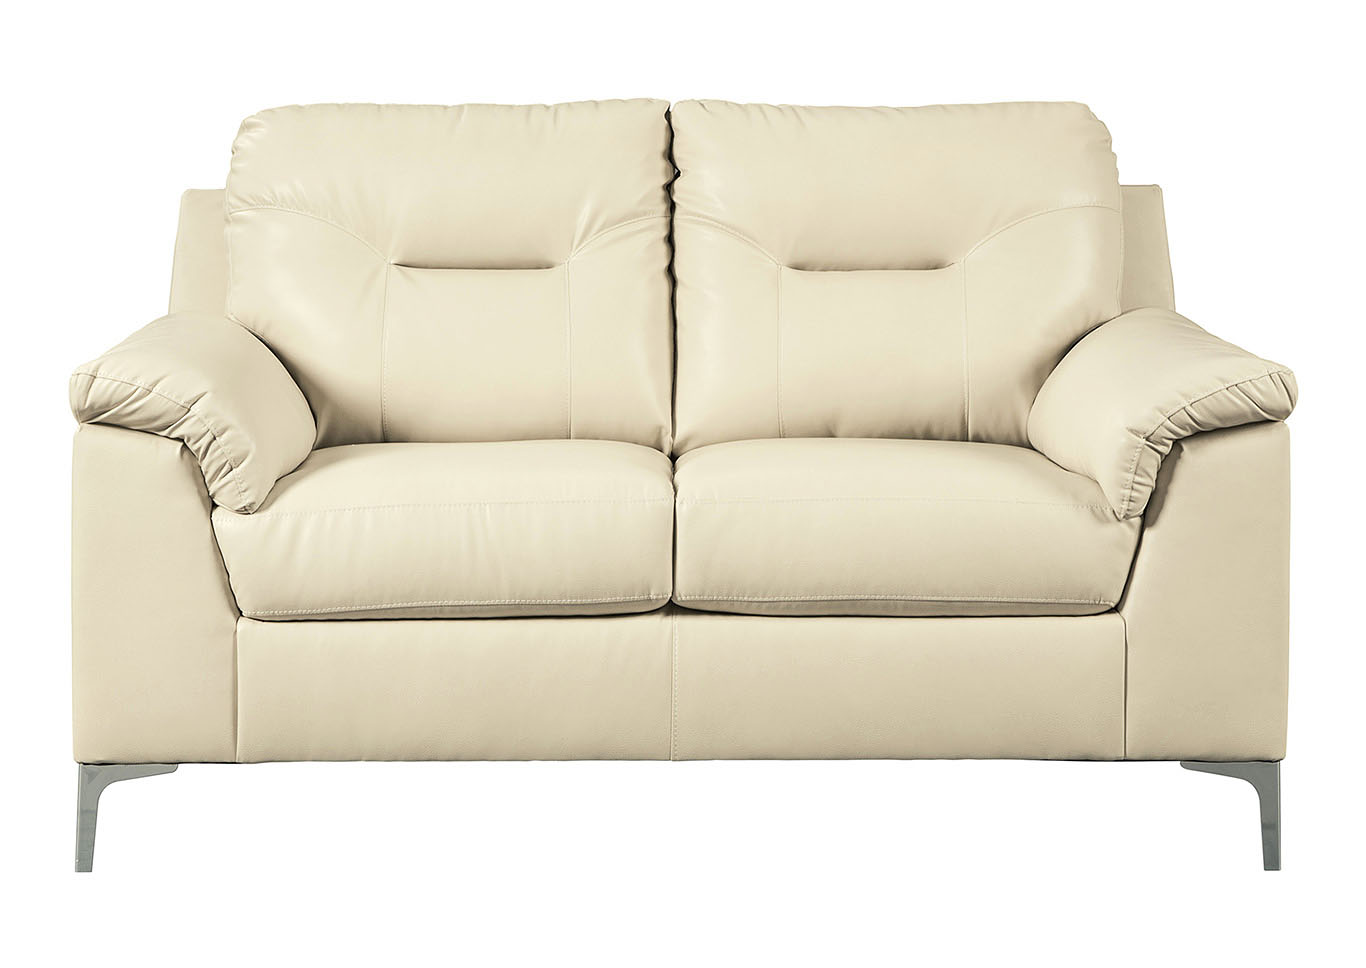 Tensas Ice Loveseat,Signature Design By Ashley